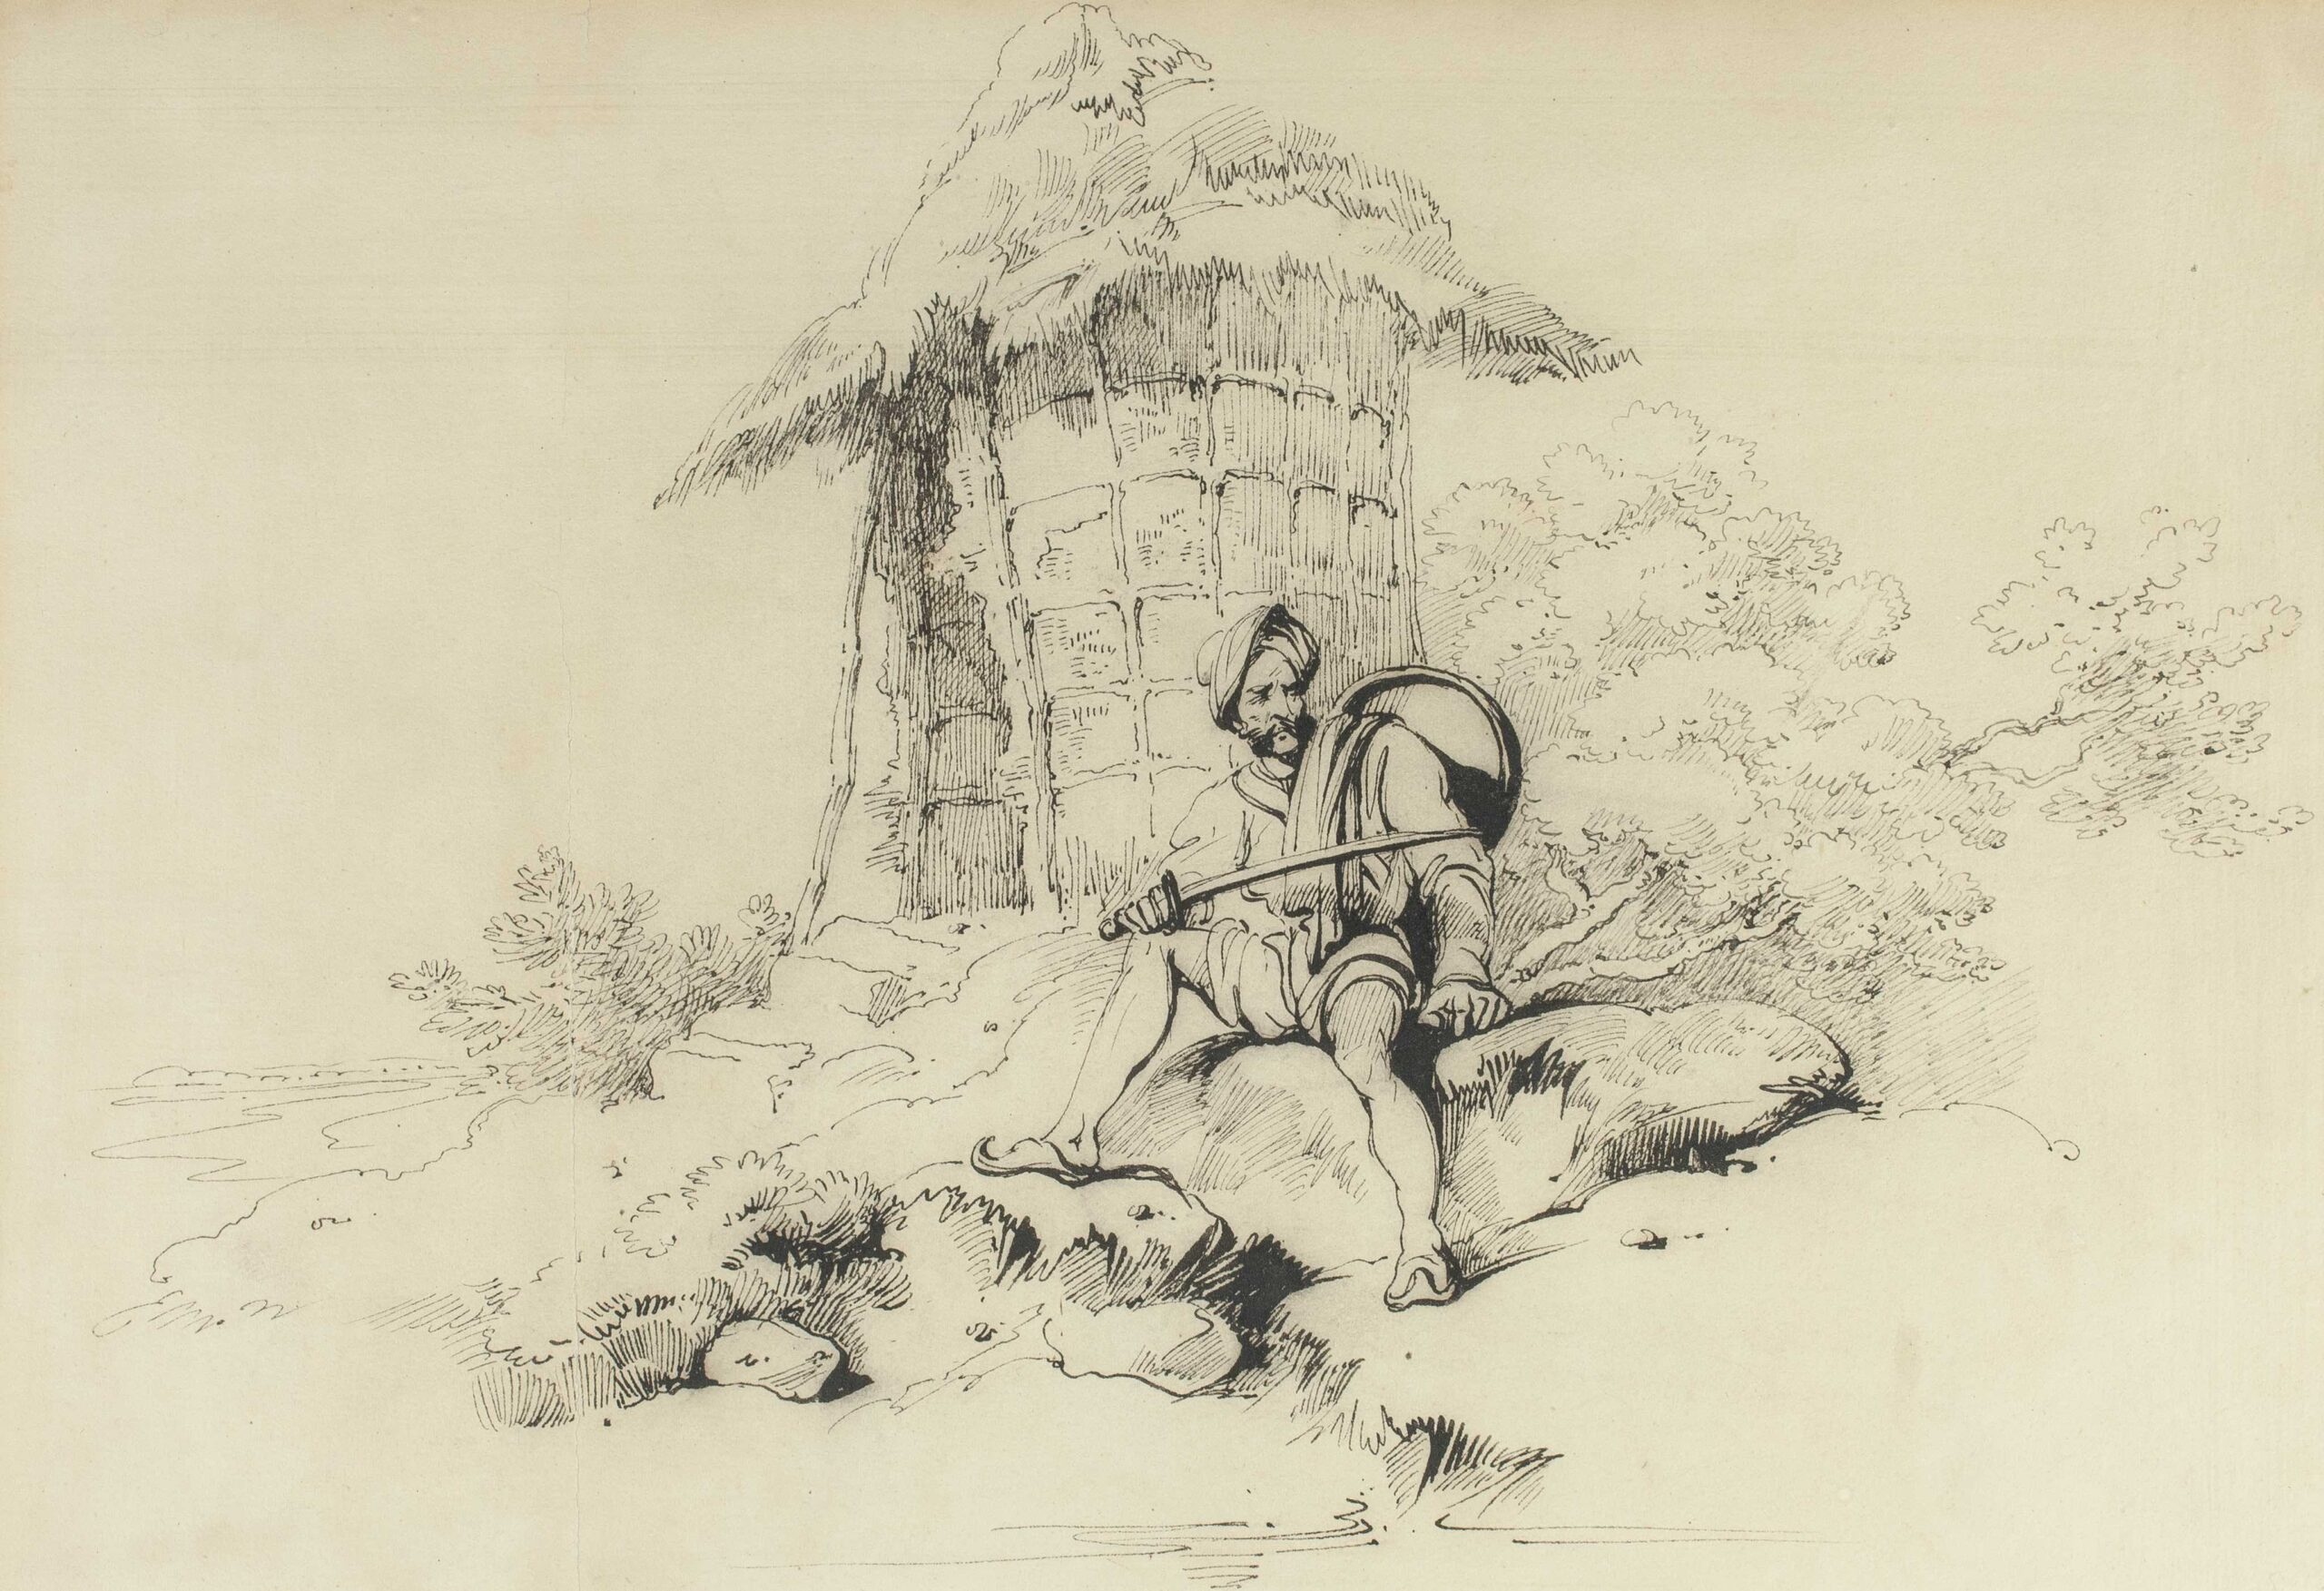 George Chinnery (1774 - 1852) Chowkidar (village watchman) Bengal Pen and ink, 8 1/4 x 12 in (21 x 30.5 cm)